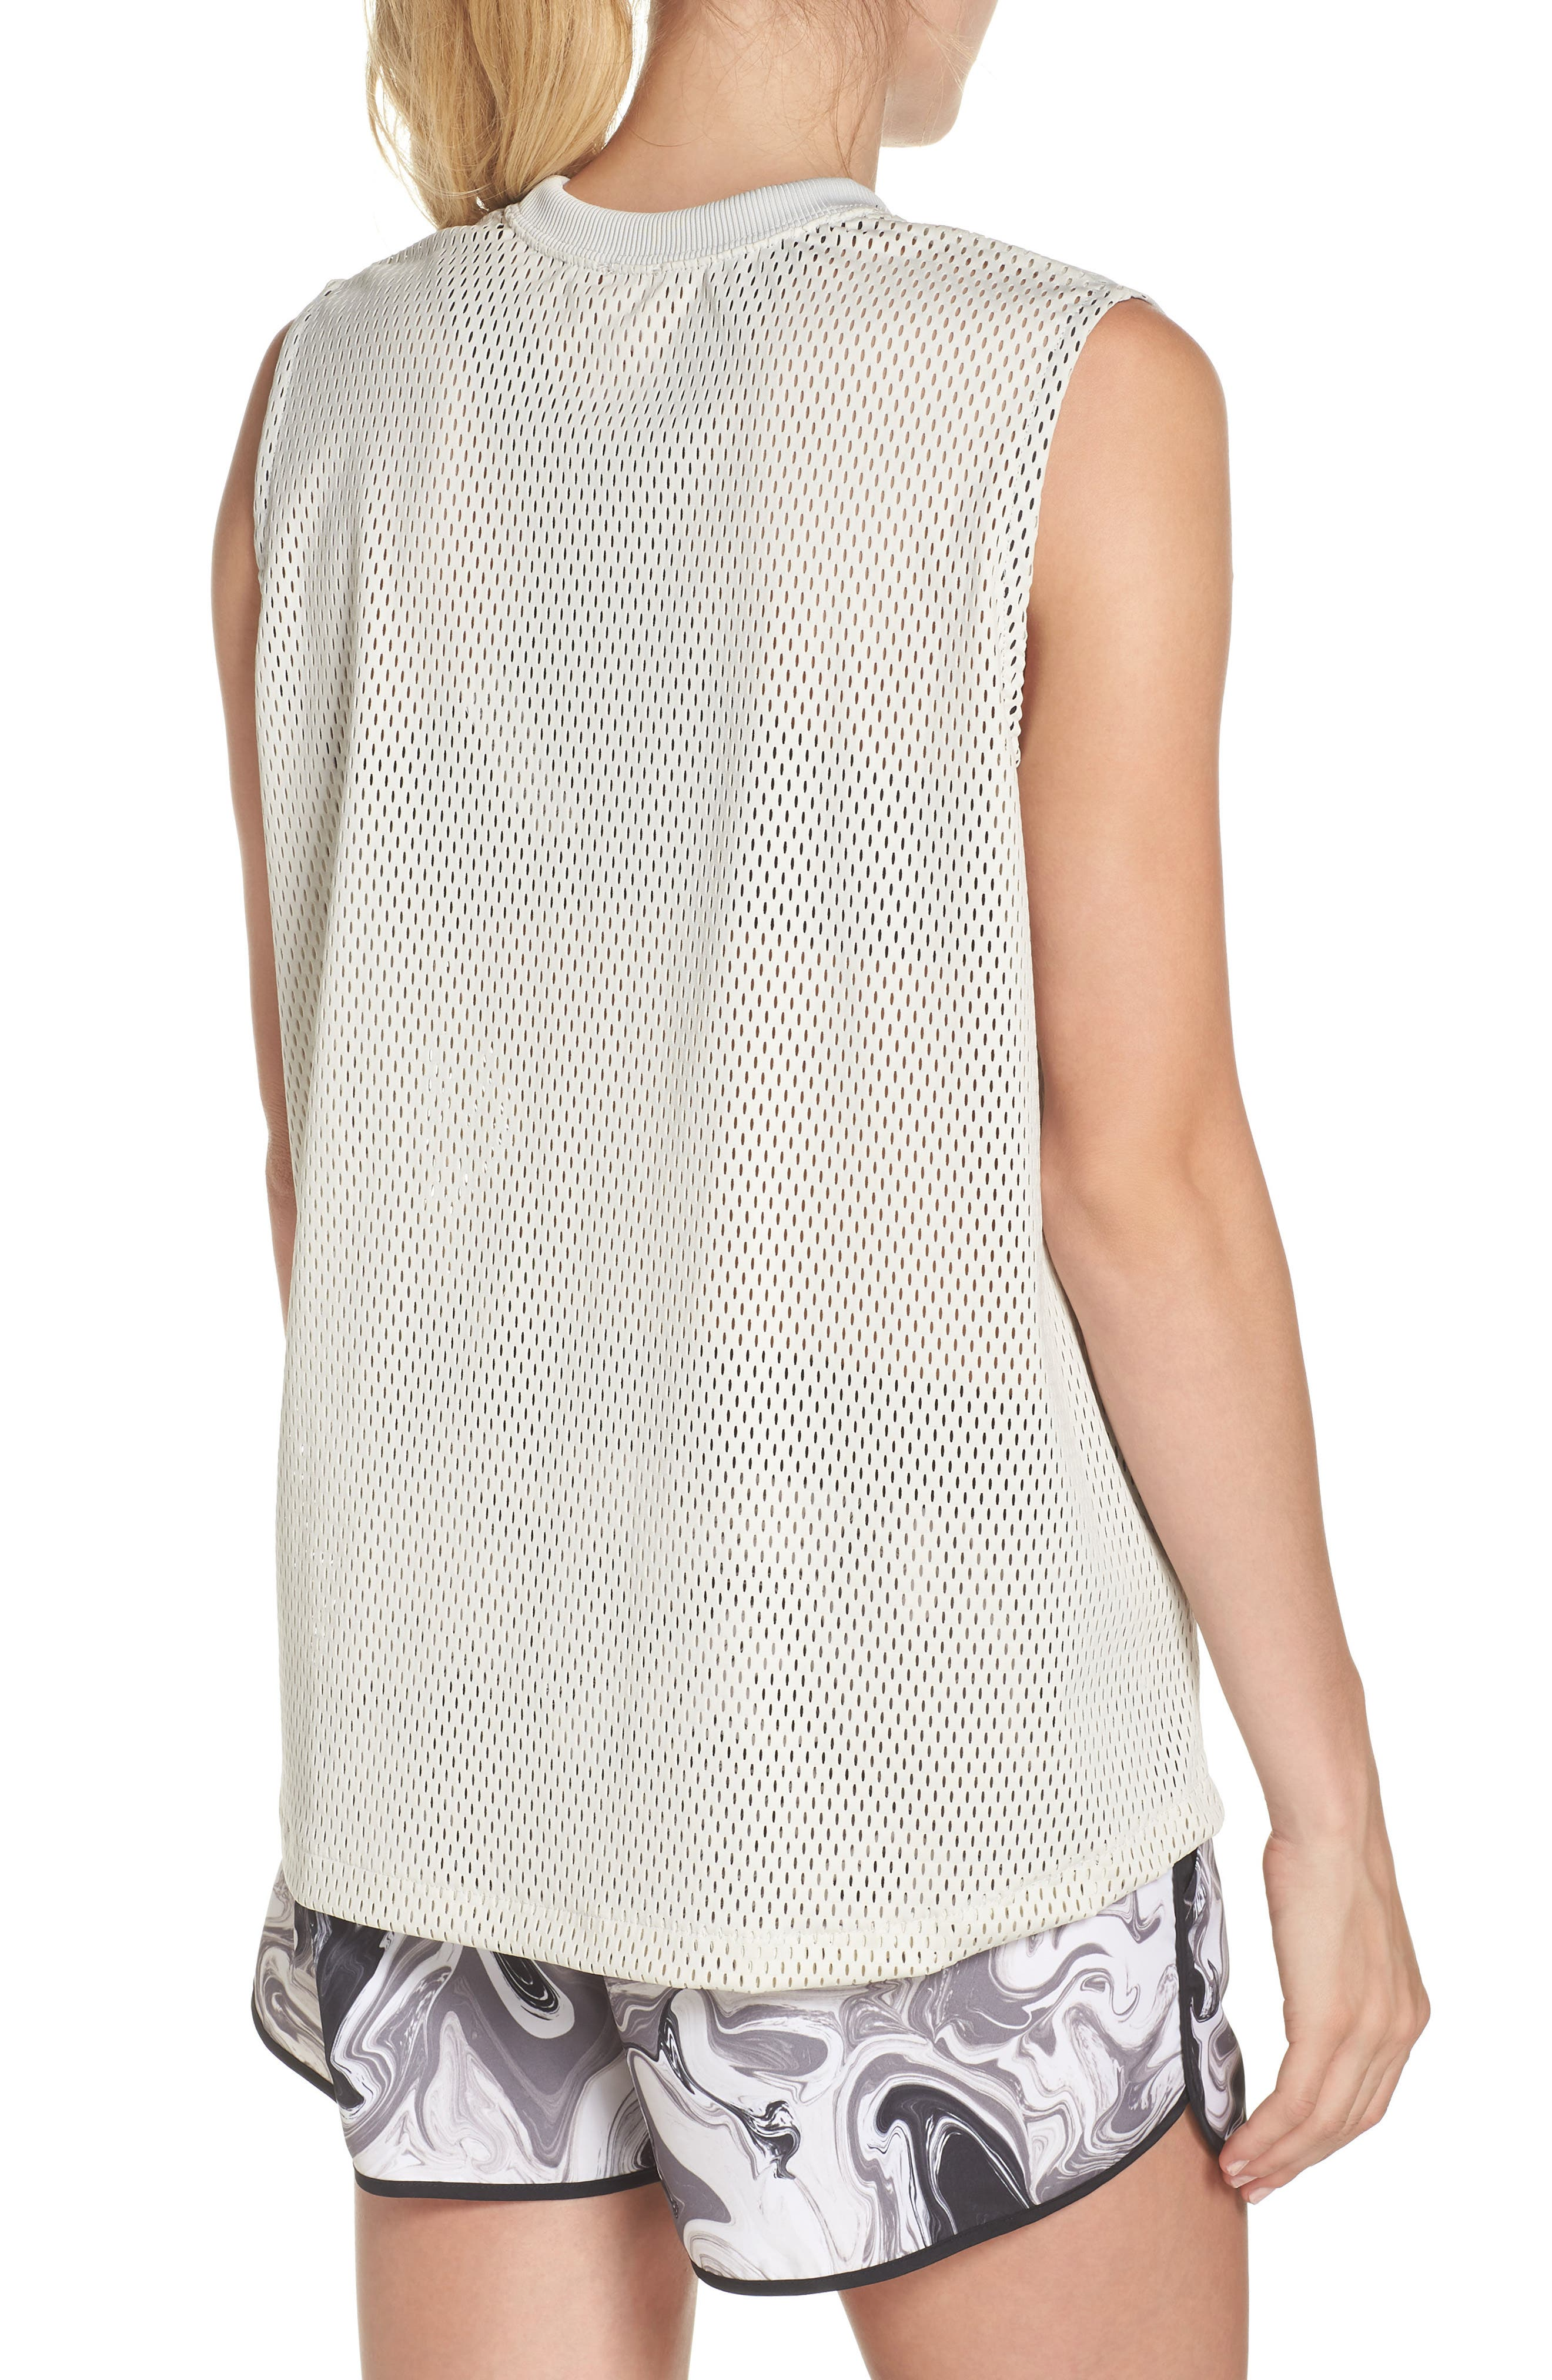 Sportswear Women's Dry Mesh Muscle Tank,                             Alternate thumbnail 4, color,                             250